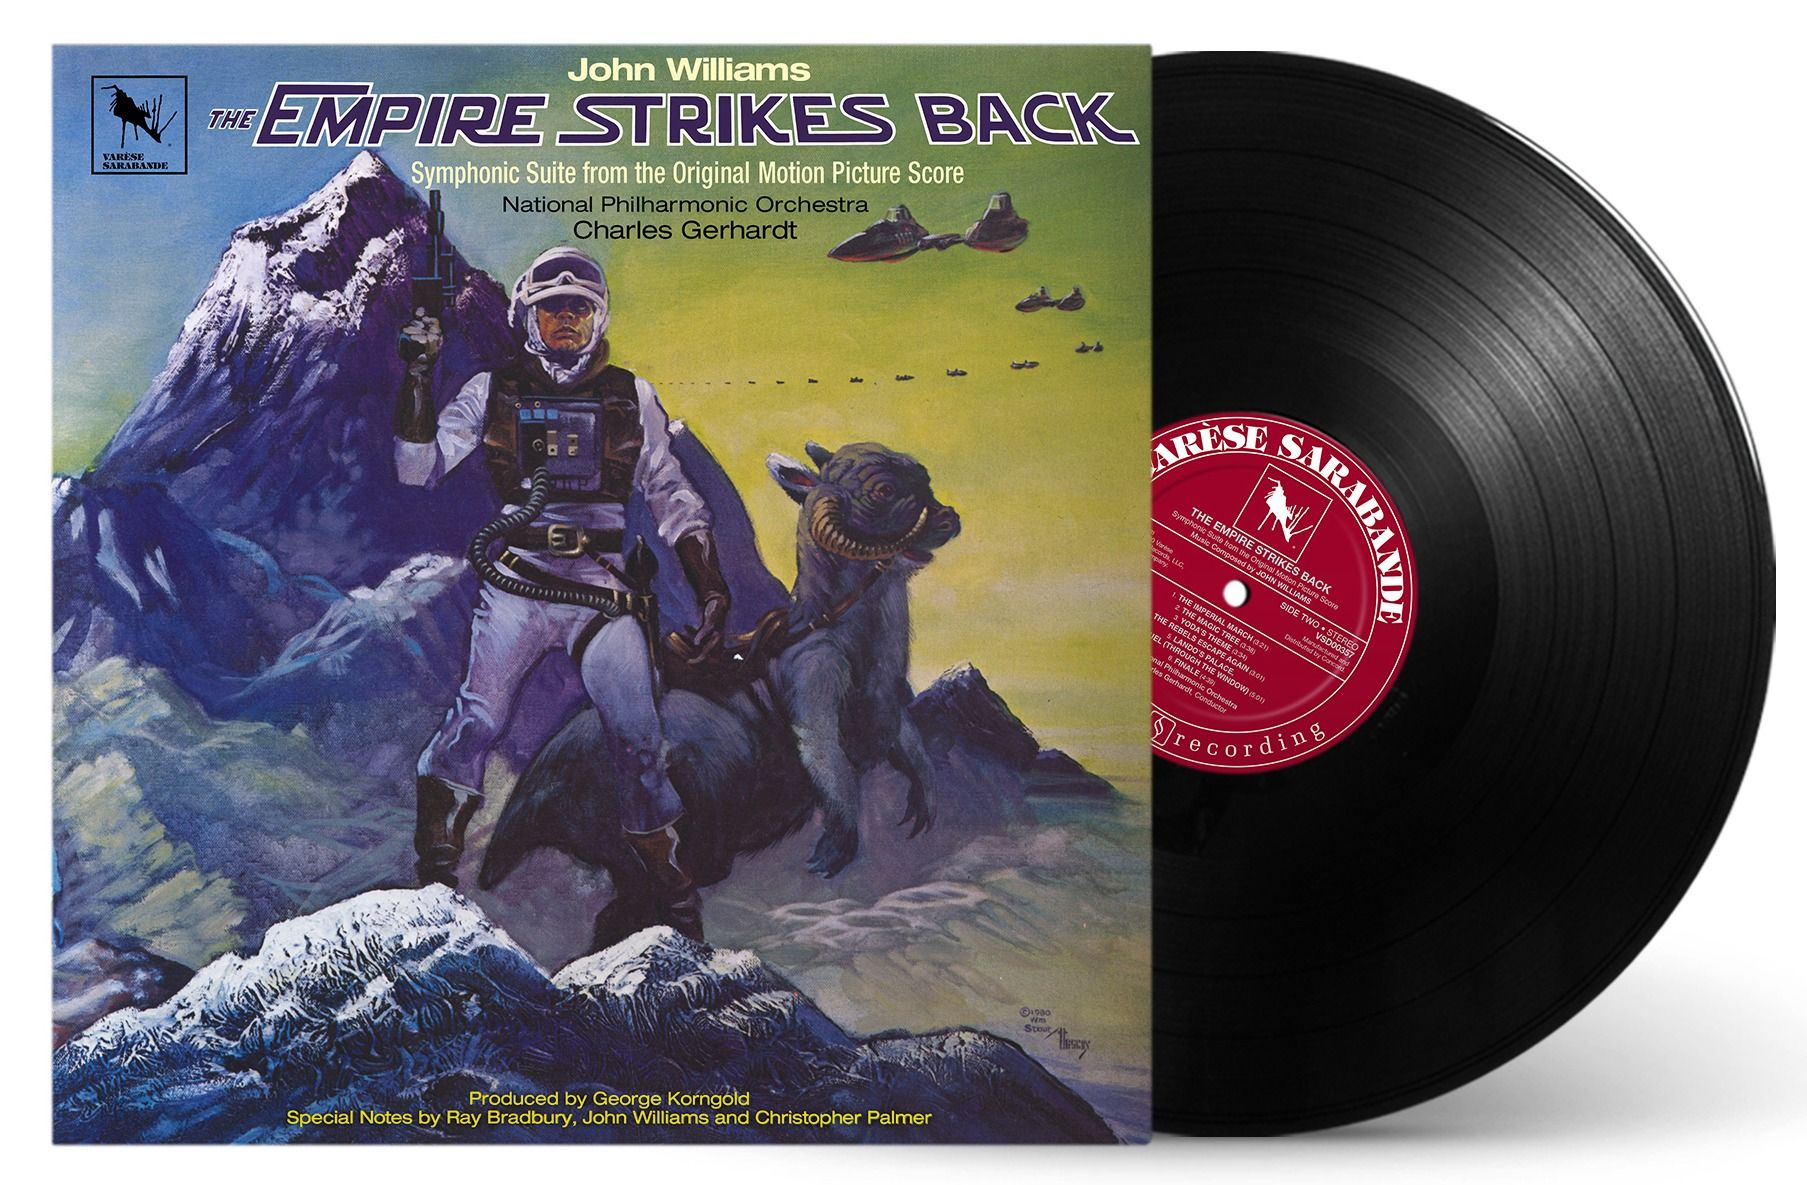 The Empire Strikes Back Original LP Is Being Re-Released This Summer